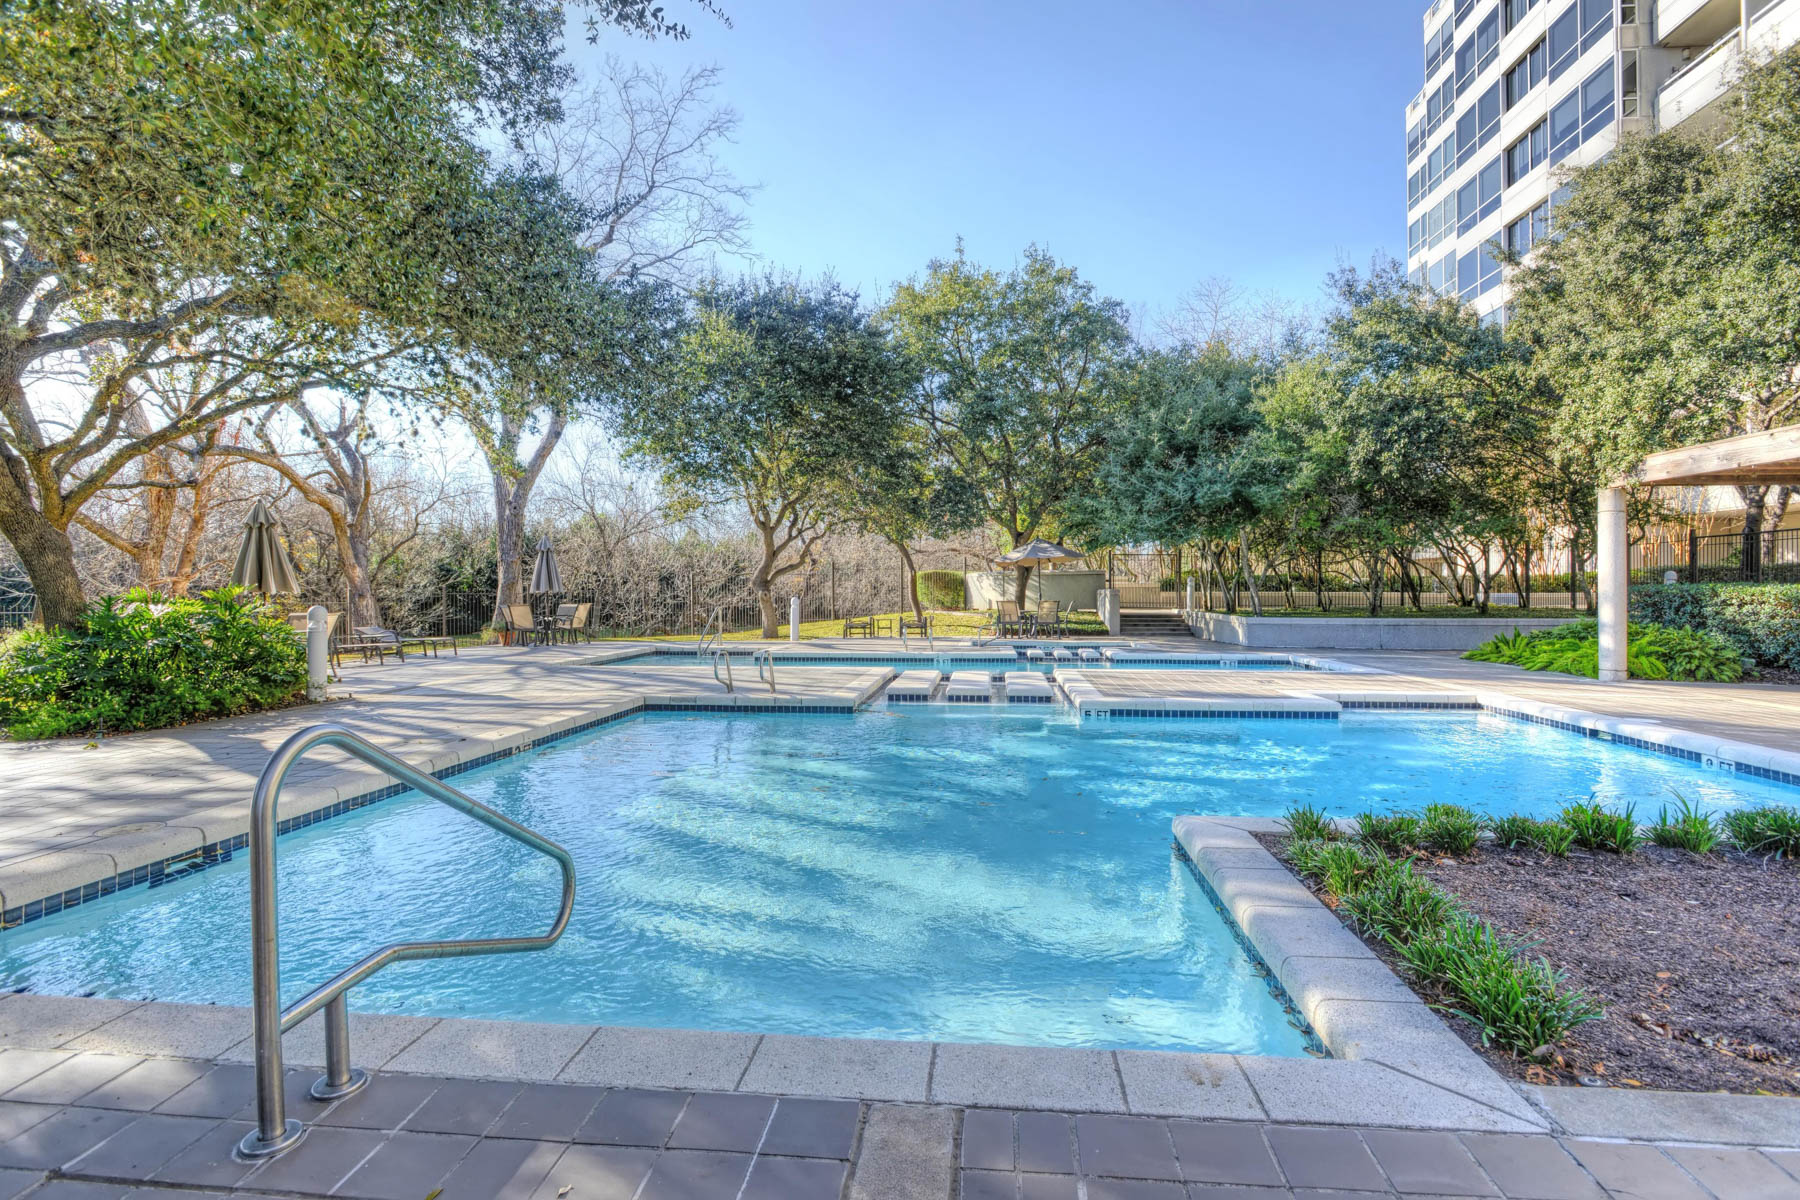 Additional photo for property listing at Pied-A-Terre in Alamo Heights 200 Patterson Ave 114A San Antonio, Texas 78209 Estados Unidos